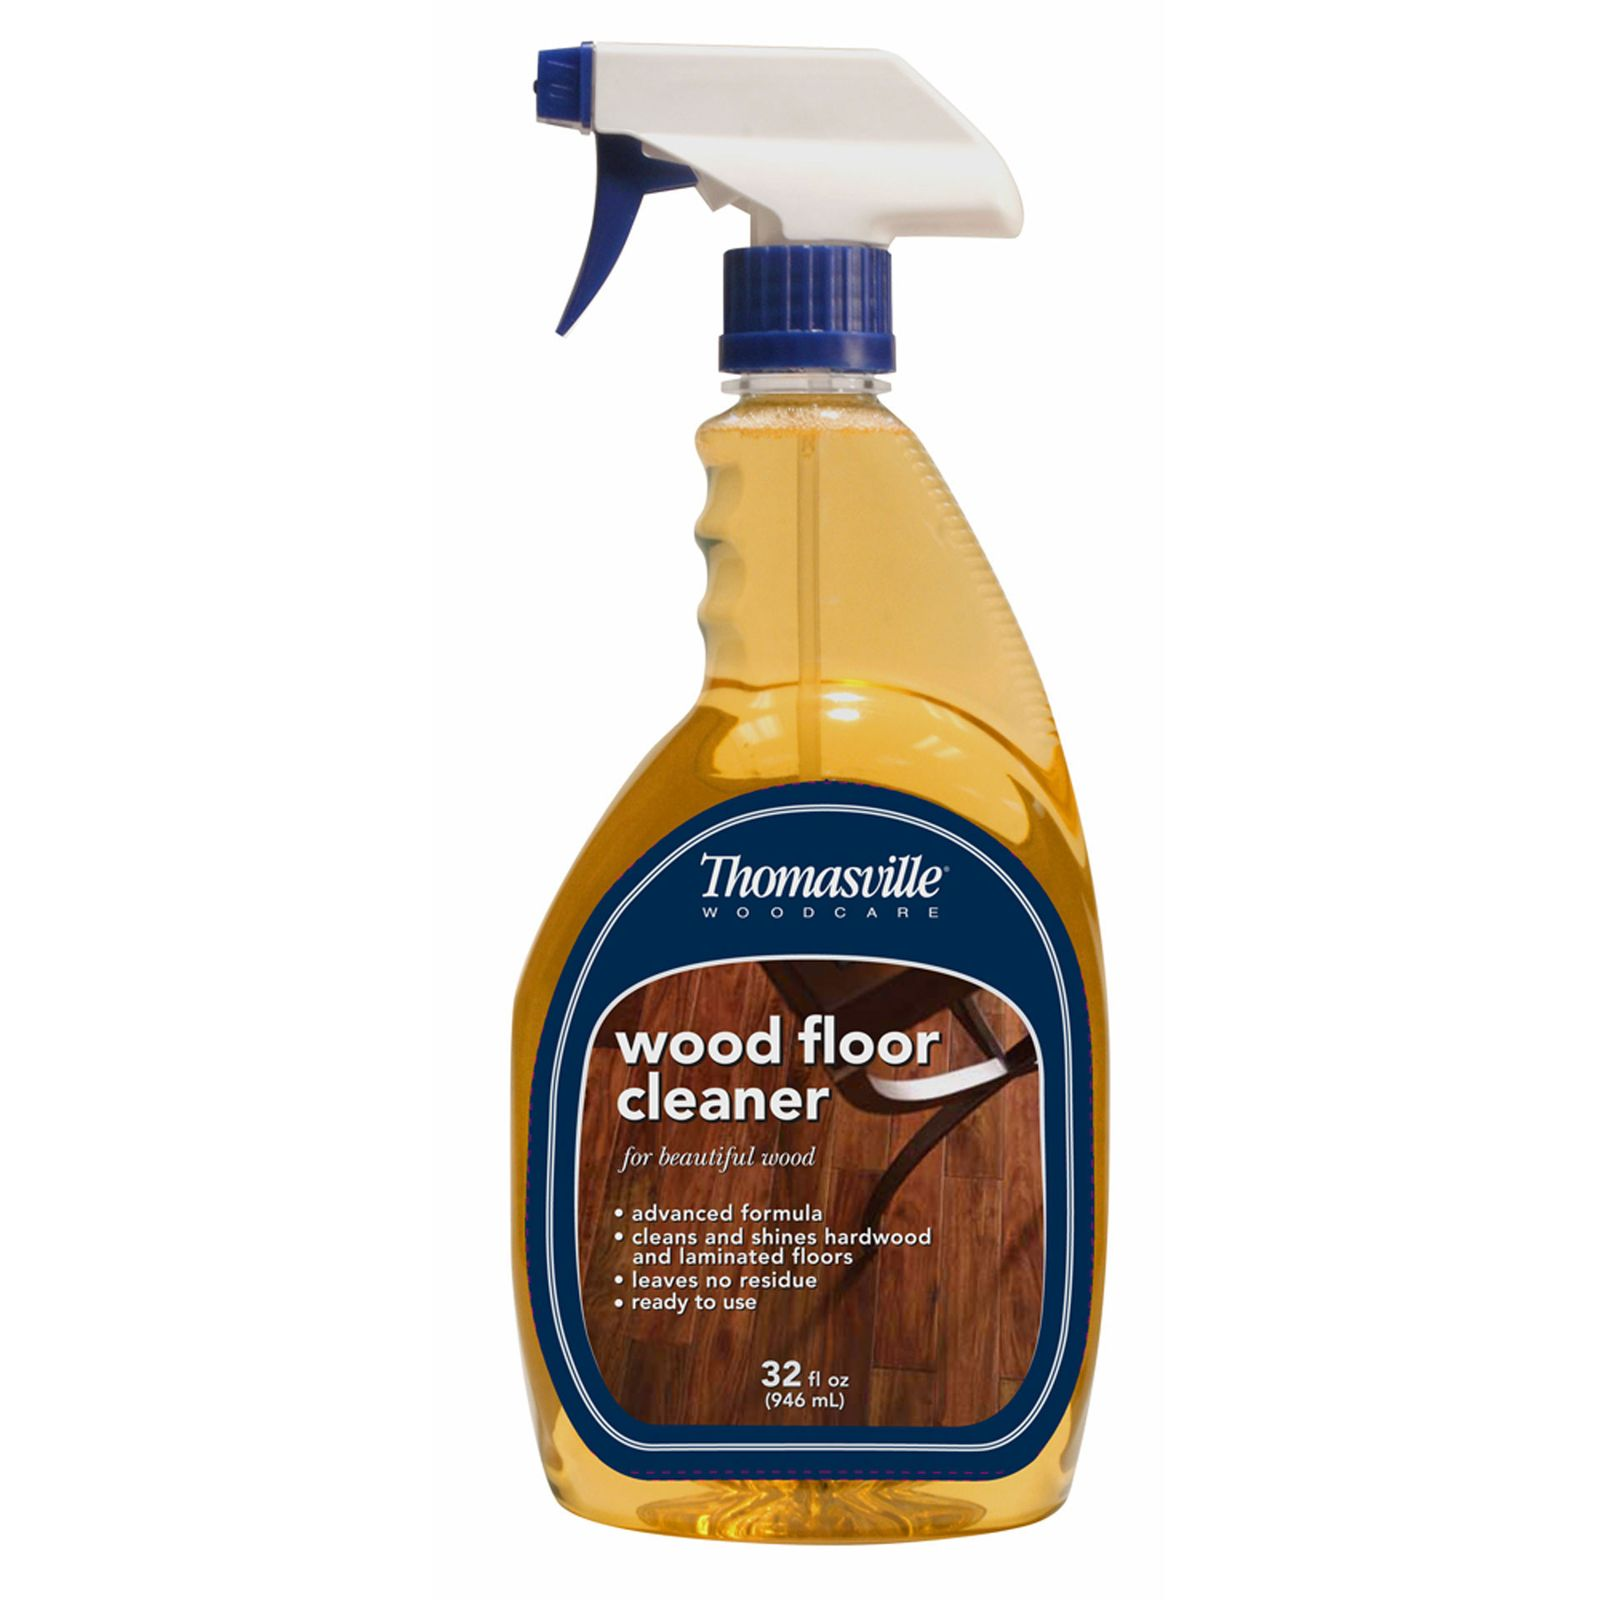 Thomasville wood floor cleaner review for Floor cleaning